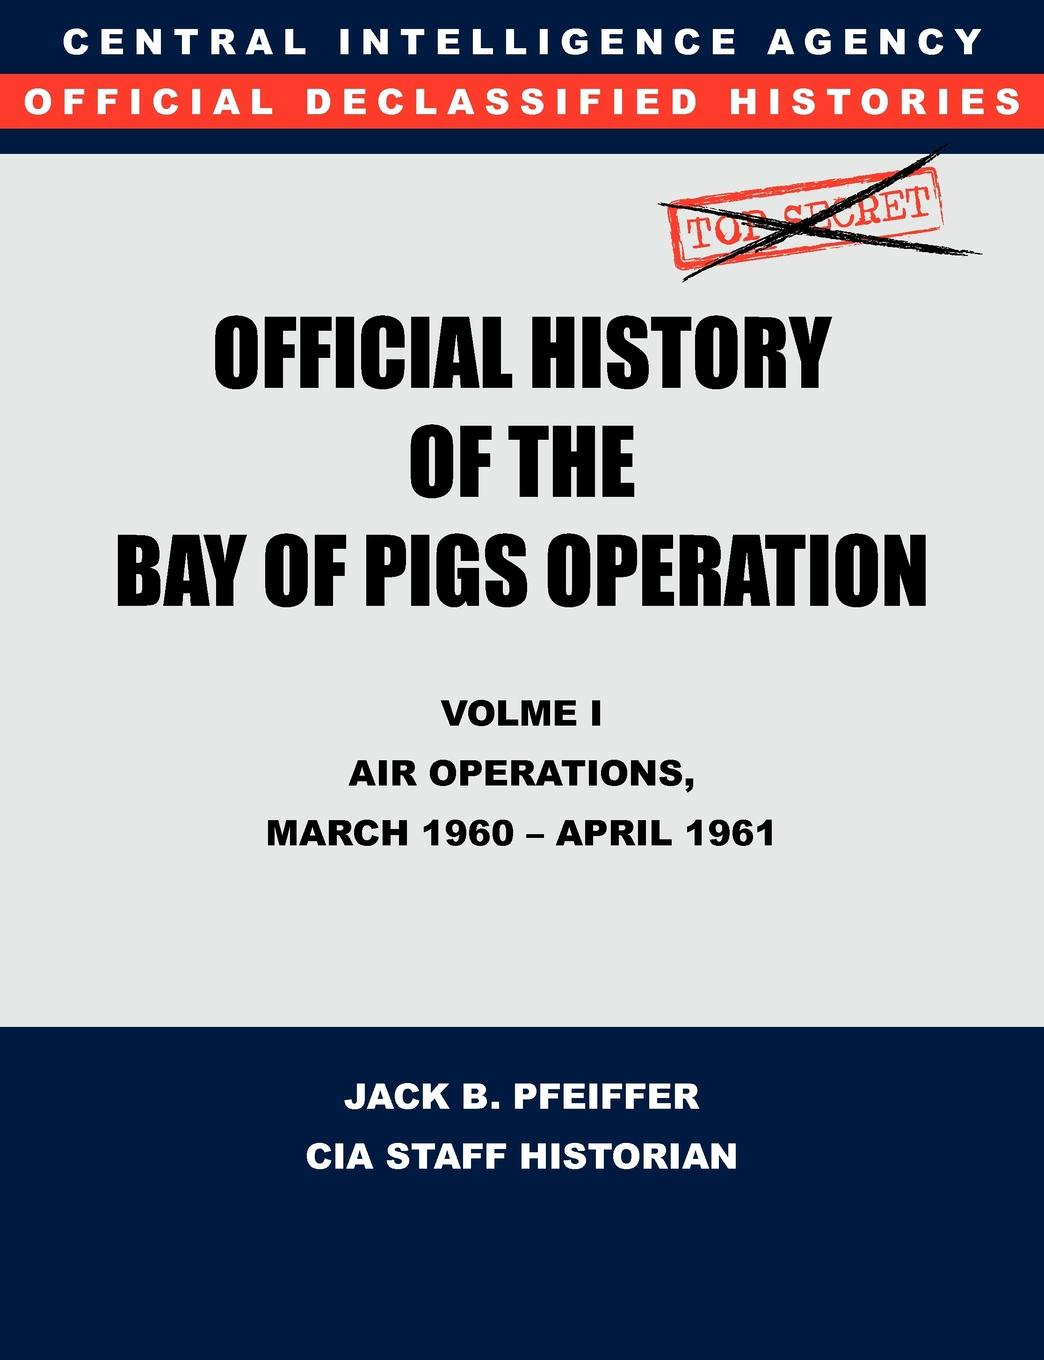 CIA History Office Staff, Jack B. Pfeiffer CIA Official History of the Bay of Pigs Invasion, Volume I. Air Operations, March 1960 - April 1961